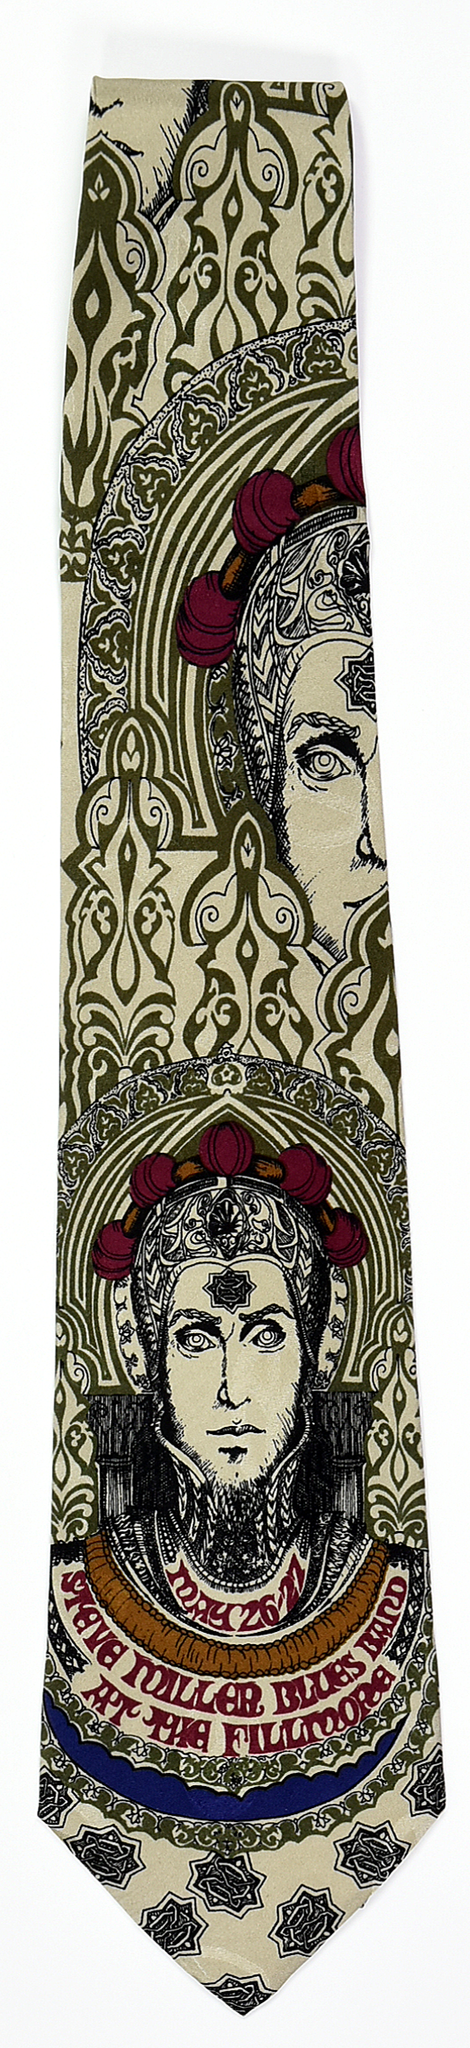 "BG-65 POSTER TIE : STEVE MILLER BLUES BAND : GREEN : MULBERRY NECKWEAR'S ""FILLMORE POSTER TIES"""